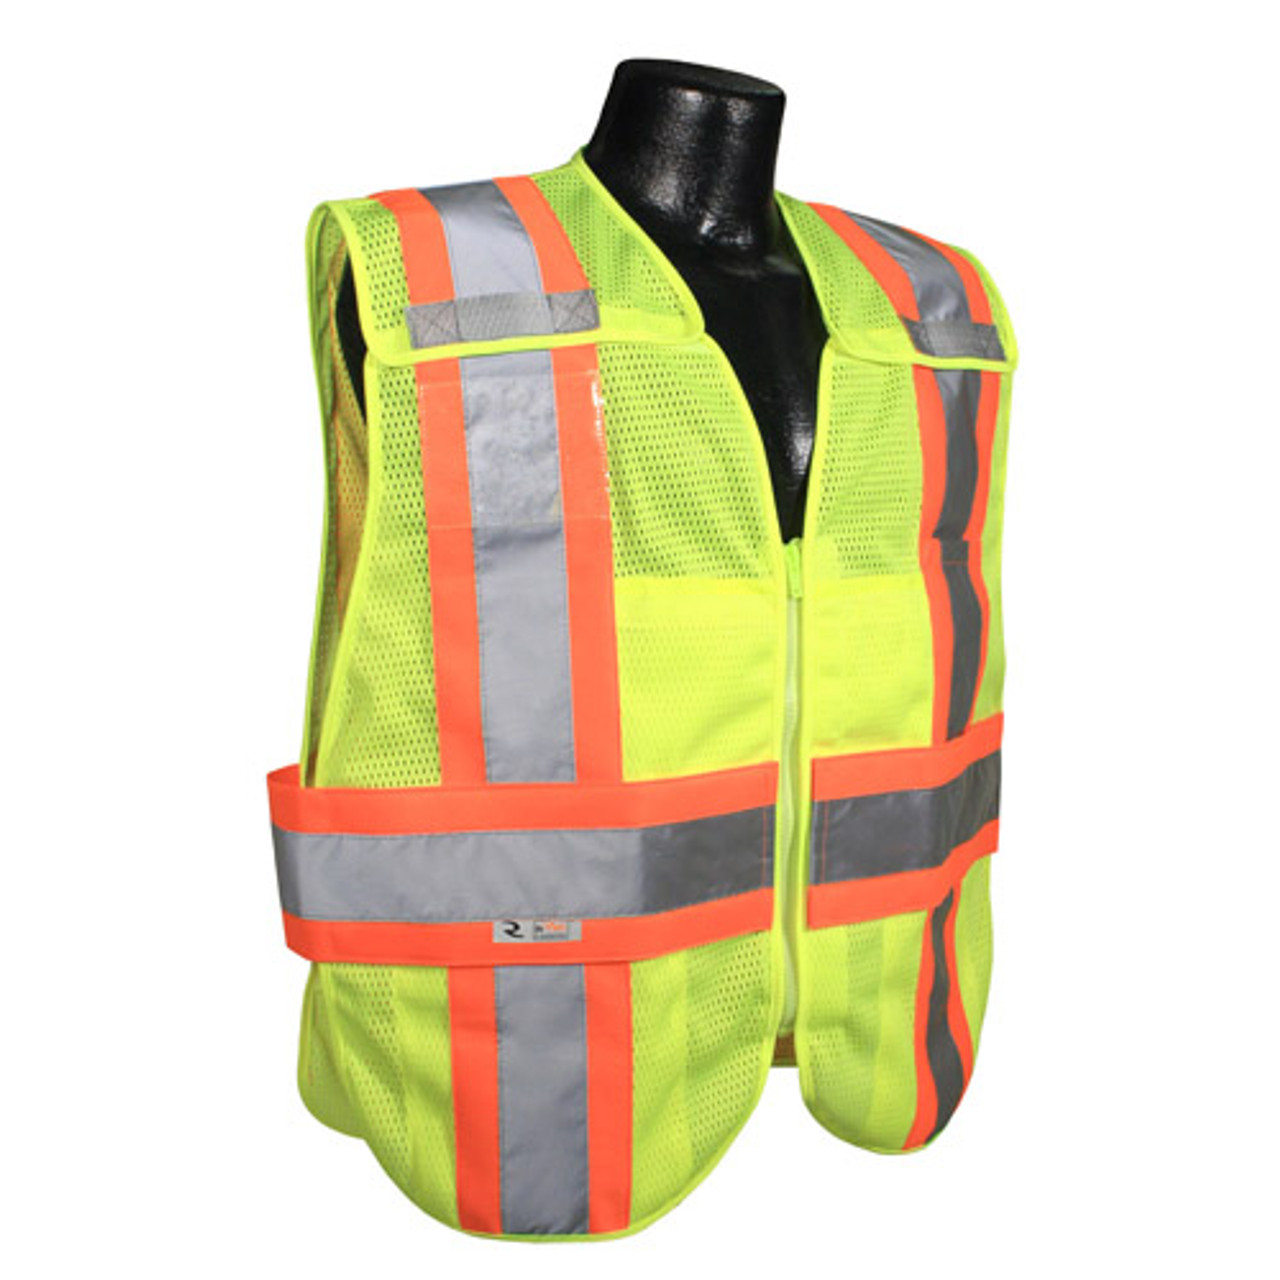 Hi-Vis Two-tone Class 2, Five-Point Breakaway Safety Vests Lime Green - Vest 21 ##VEST 21 ##